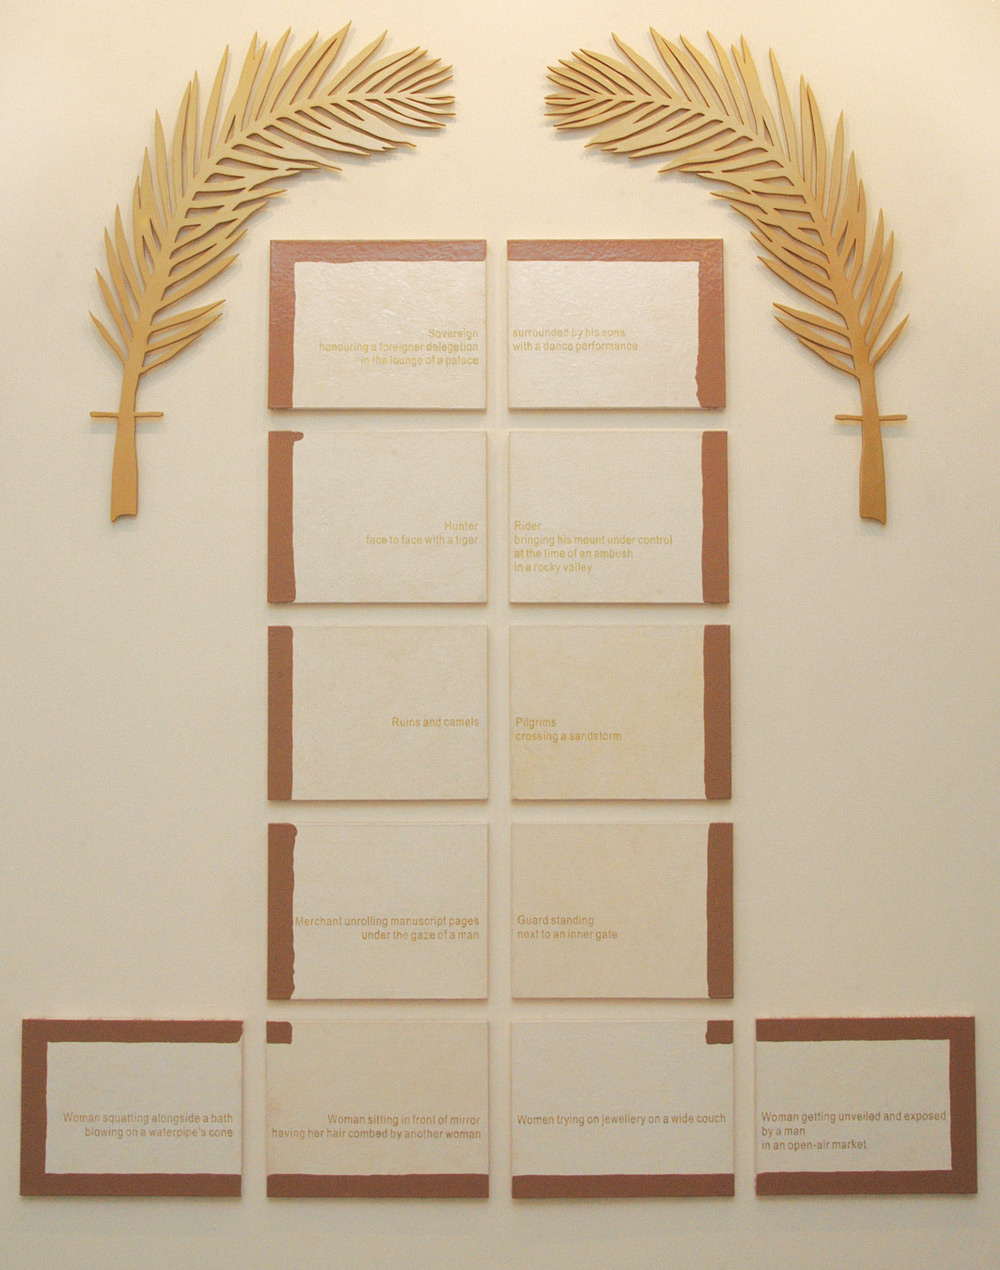 The Motif Celebration (A Dreamed Collection)  2005,Mix medias, Twelve canvas topped with two golden PVC palm leaves, appr. 202.6 x 243 cm (installation), 48.4 x 38.2 cm (canvas)